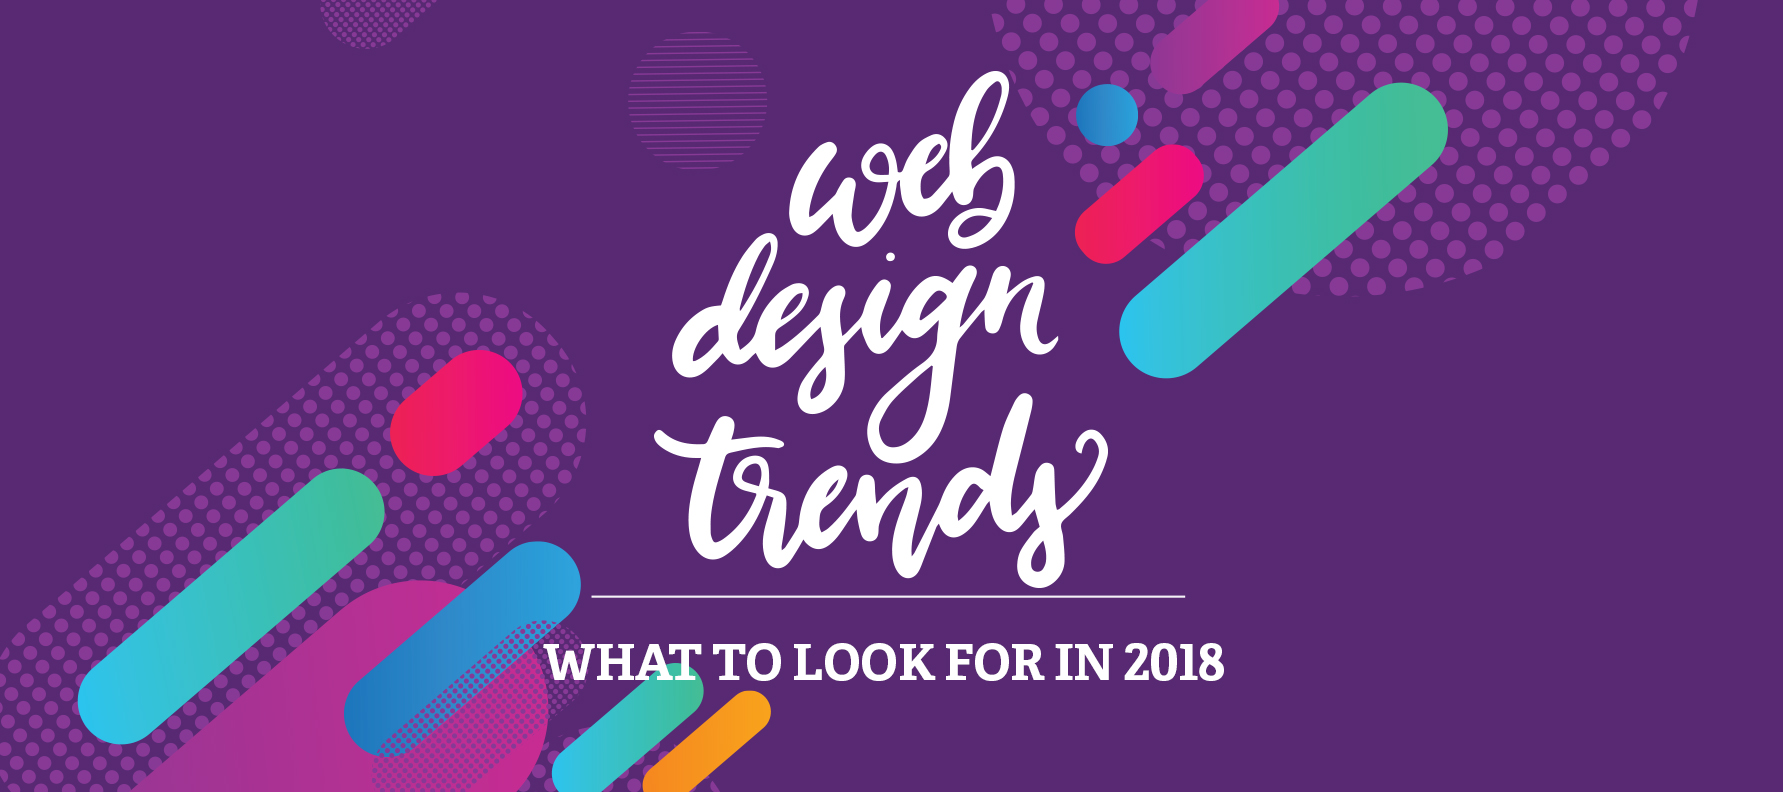 Webenertia blog web design trends what to look for in for 2018 pool design trends